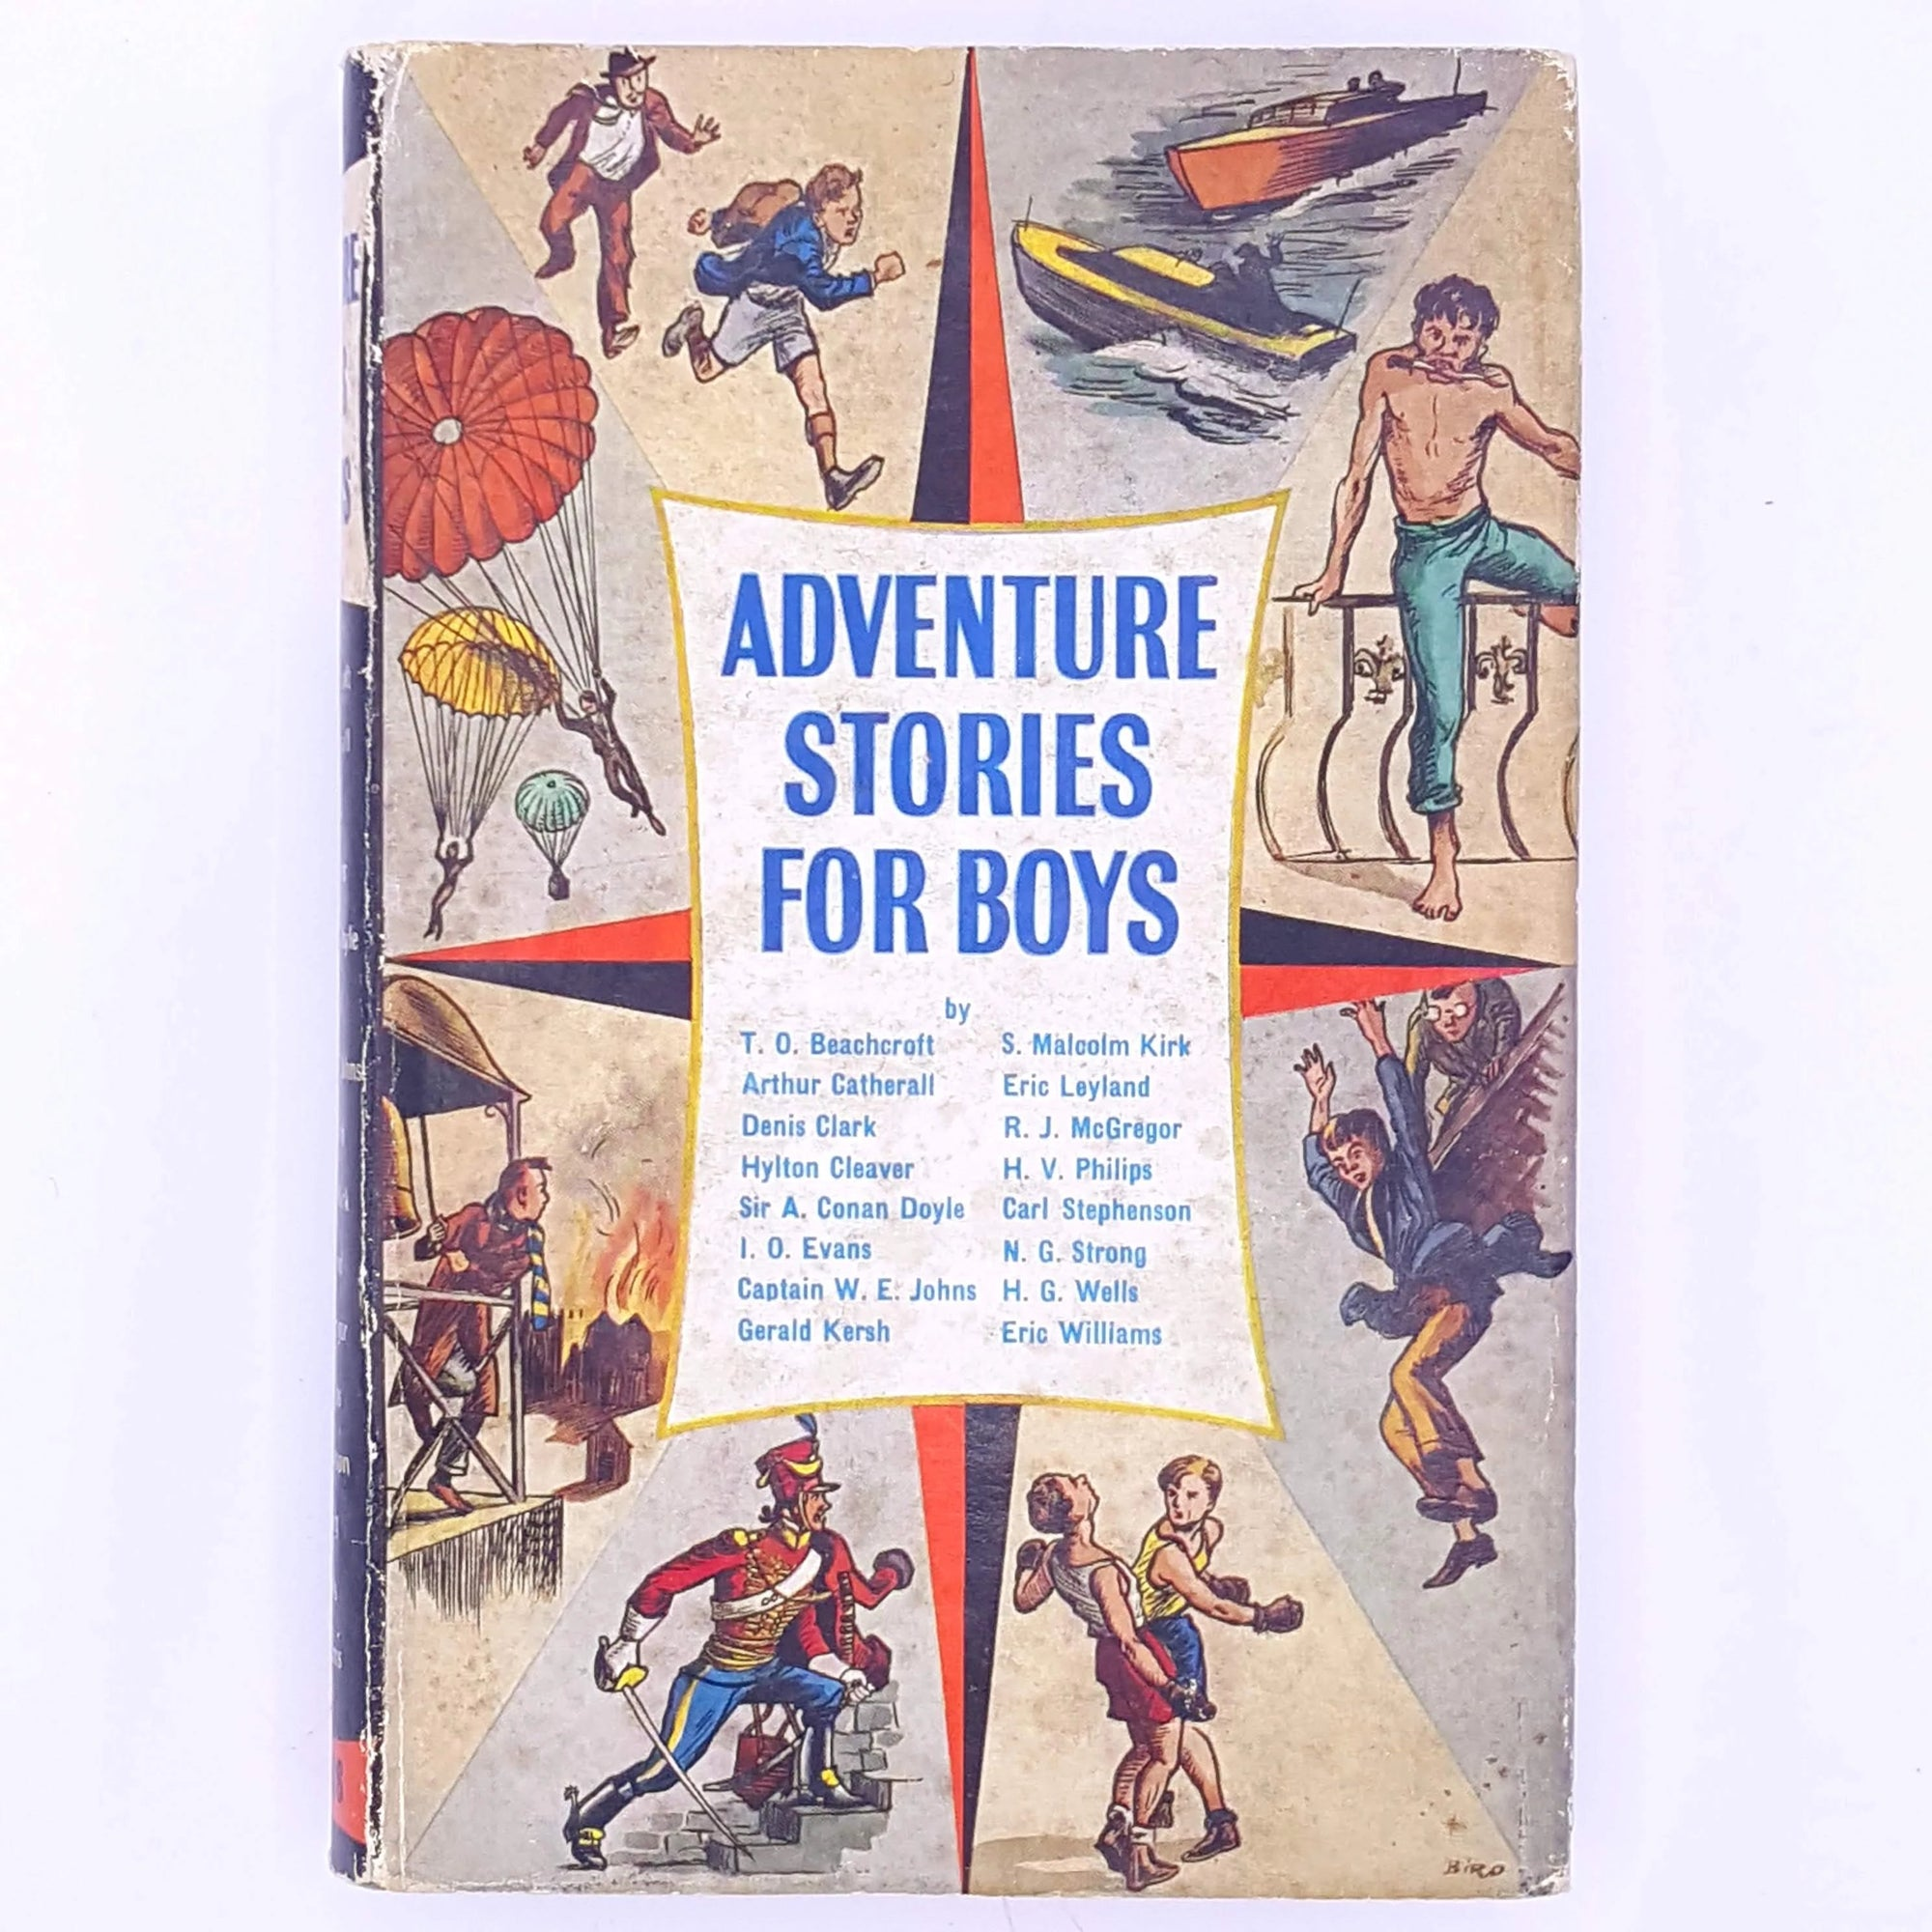 for-kids-thrift-old-antique-Adventure-stories-For-Boys-decorative-patterned-books-childrens-stories-country-house-library-christmas-gifts-vintage-classic-